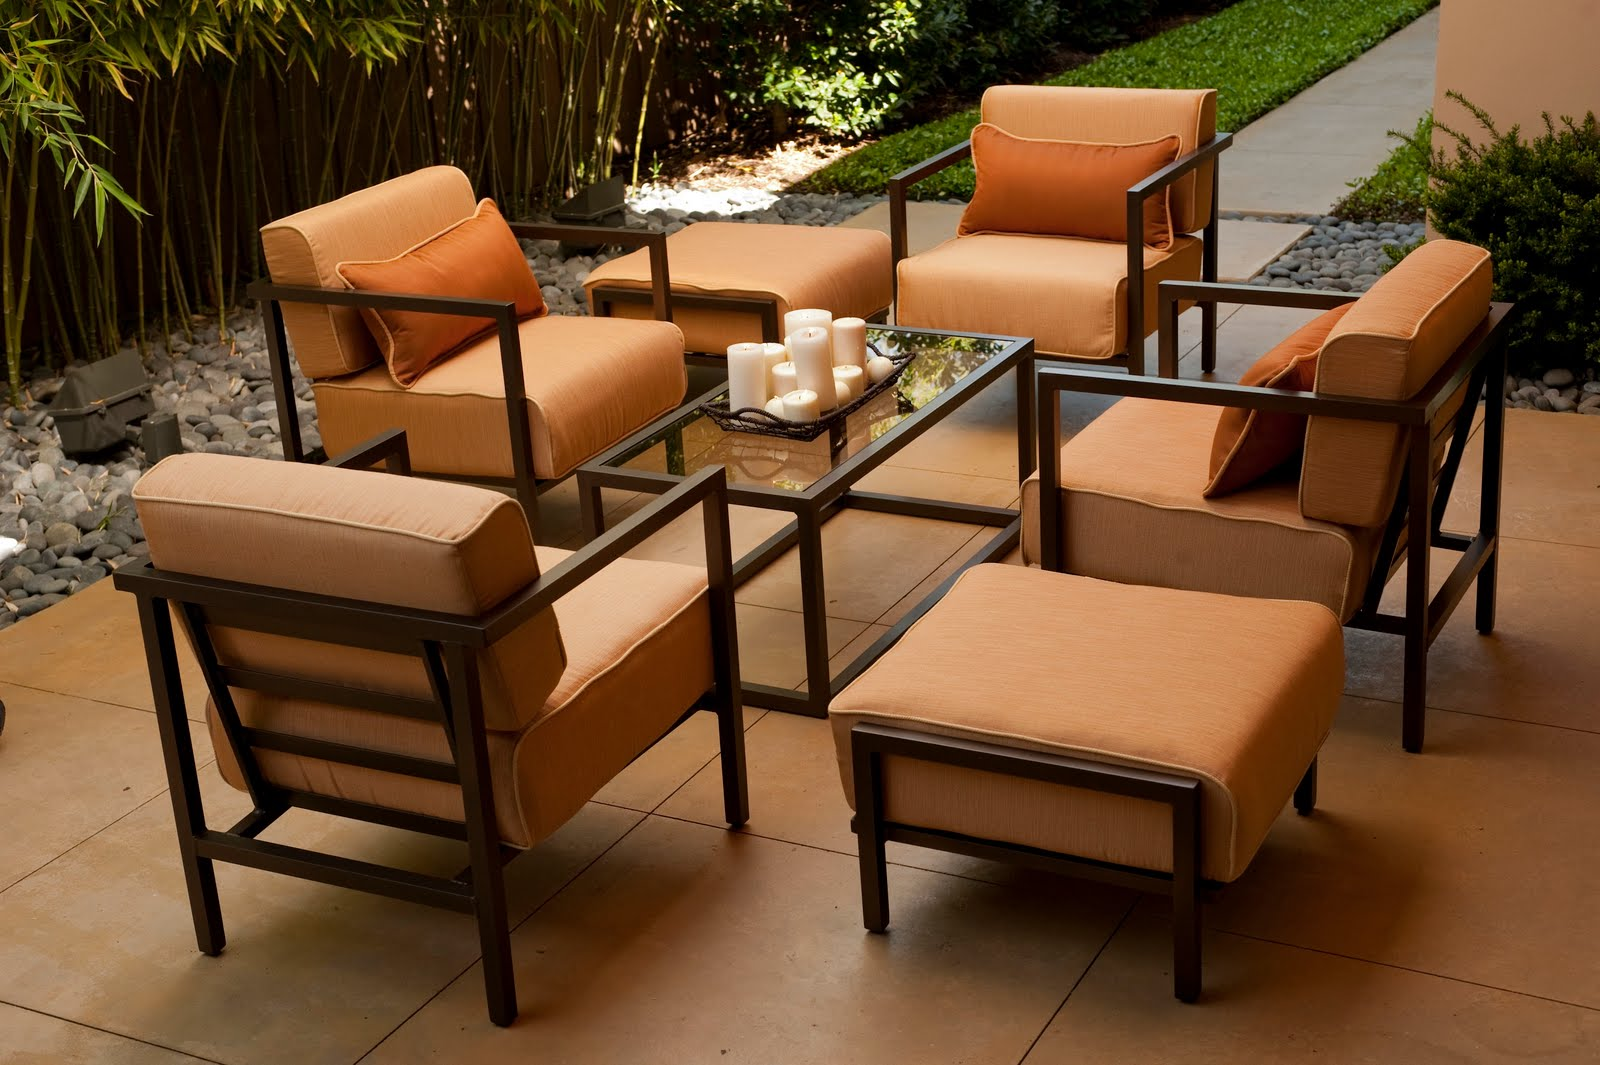 Joe Ruggiero Designer HGTV Host CasualOutdoor Furniture Market